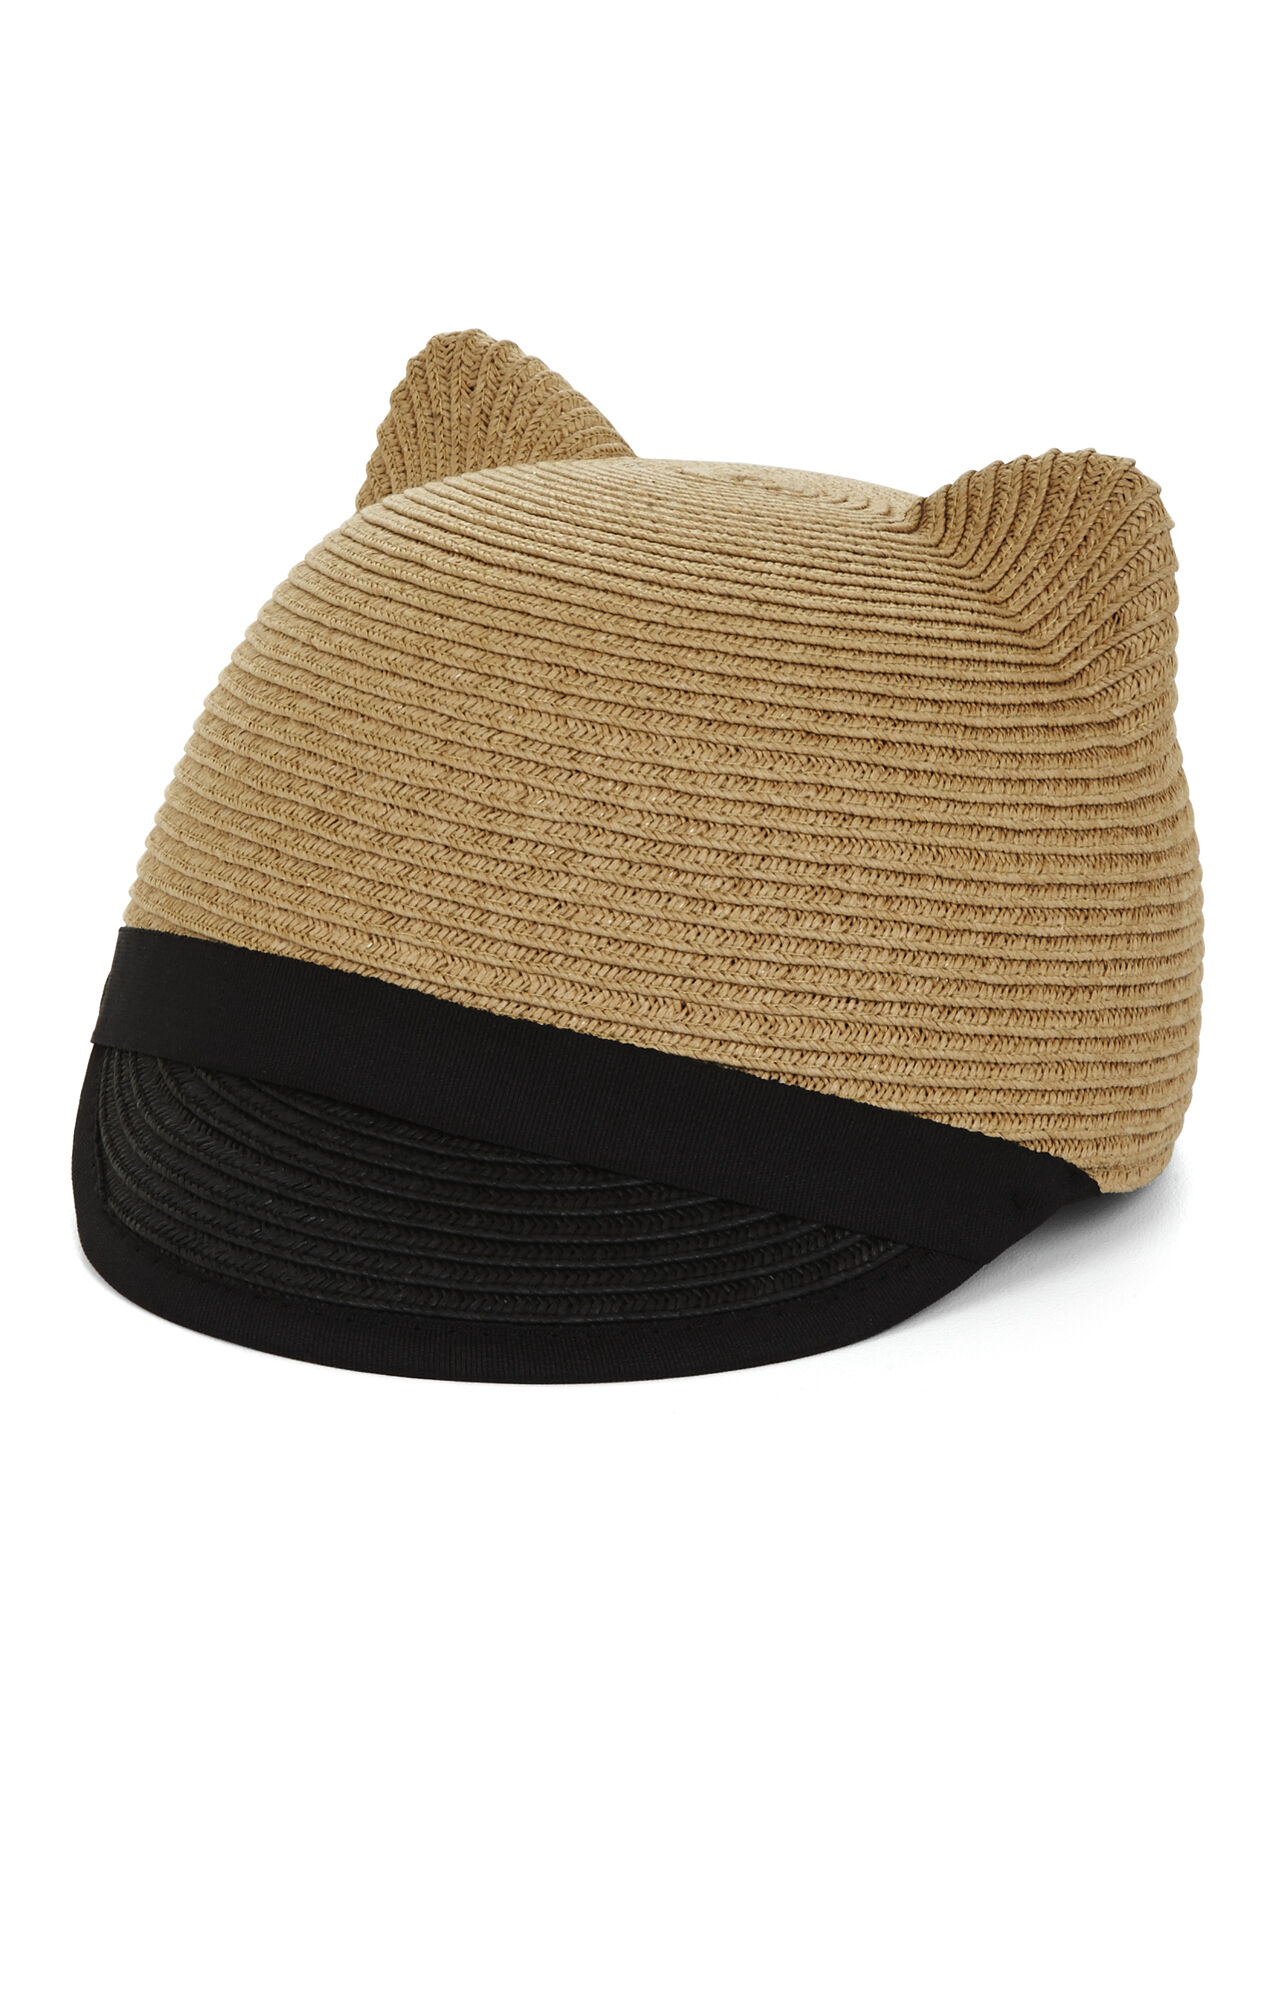 Kitty Straw Hat